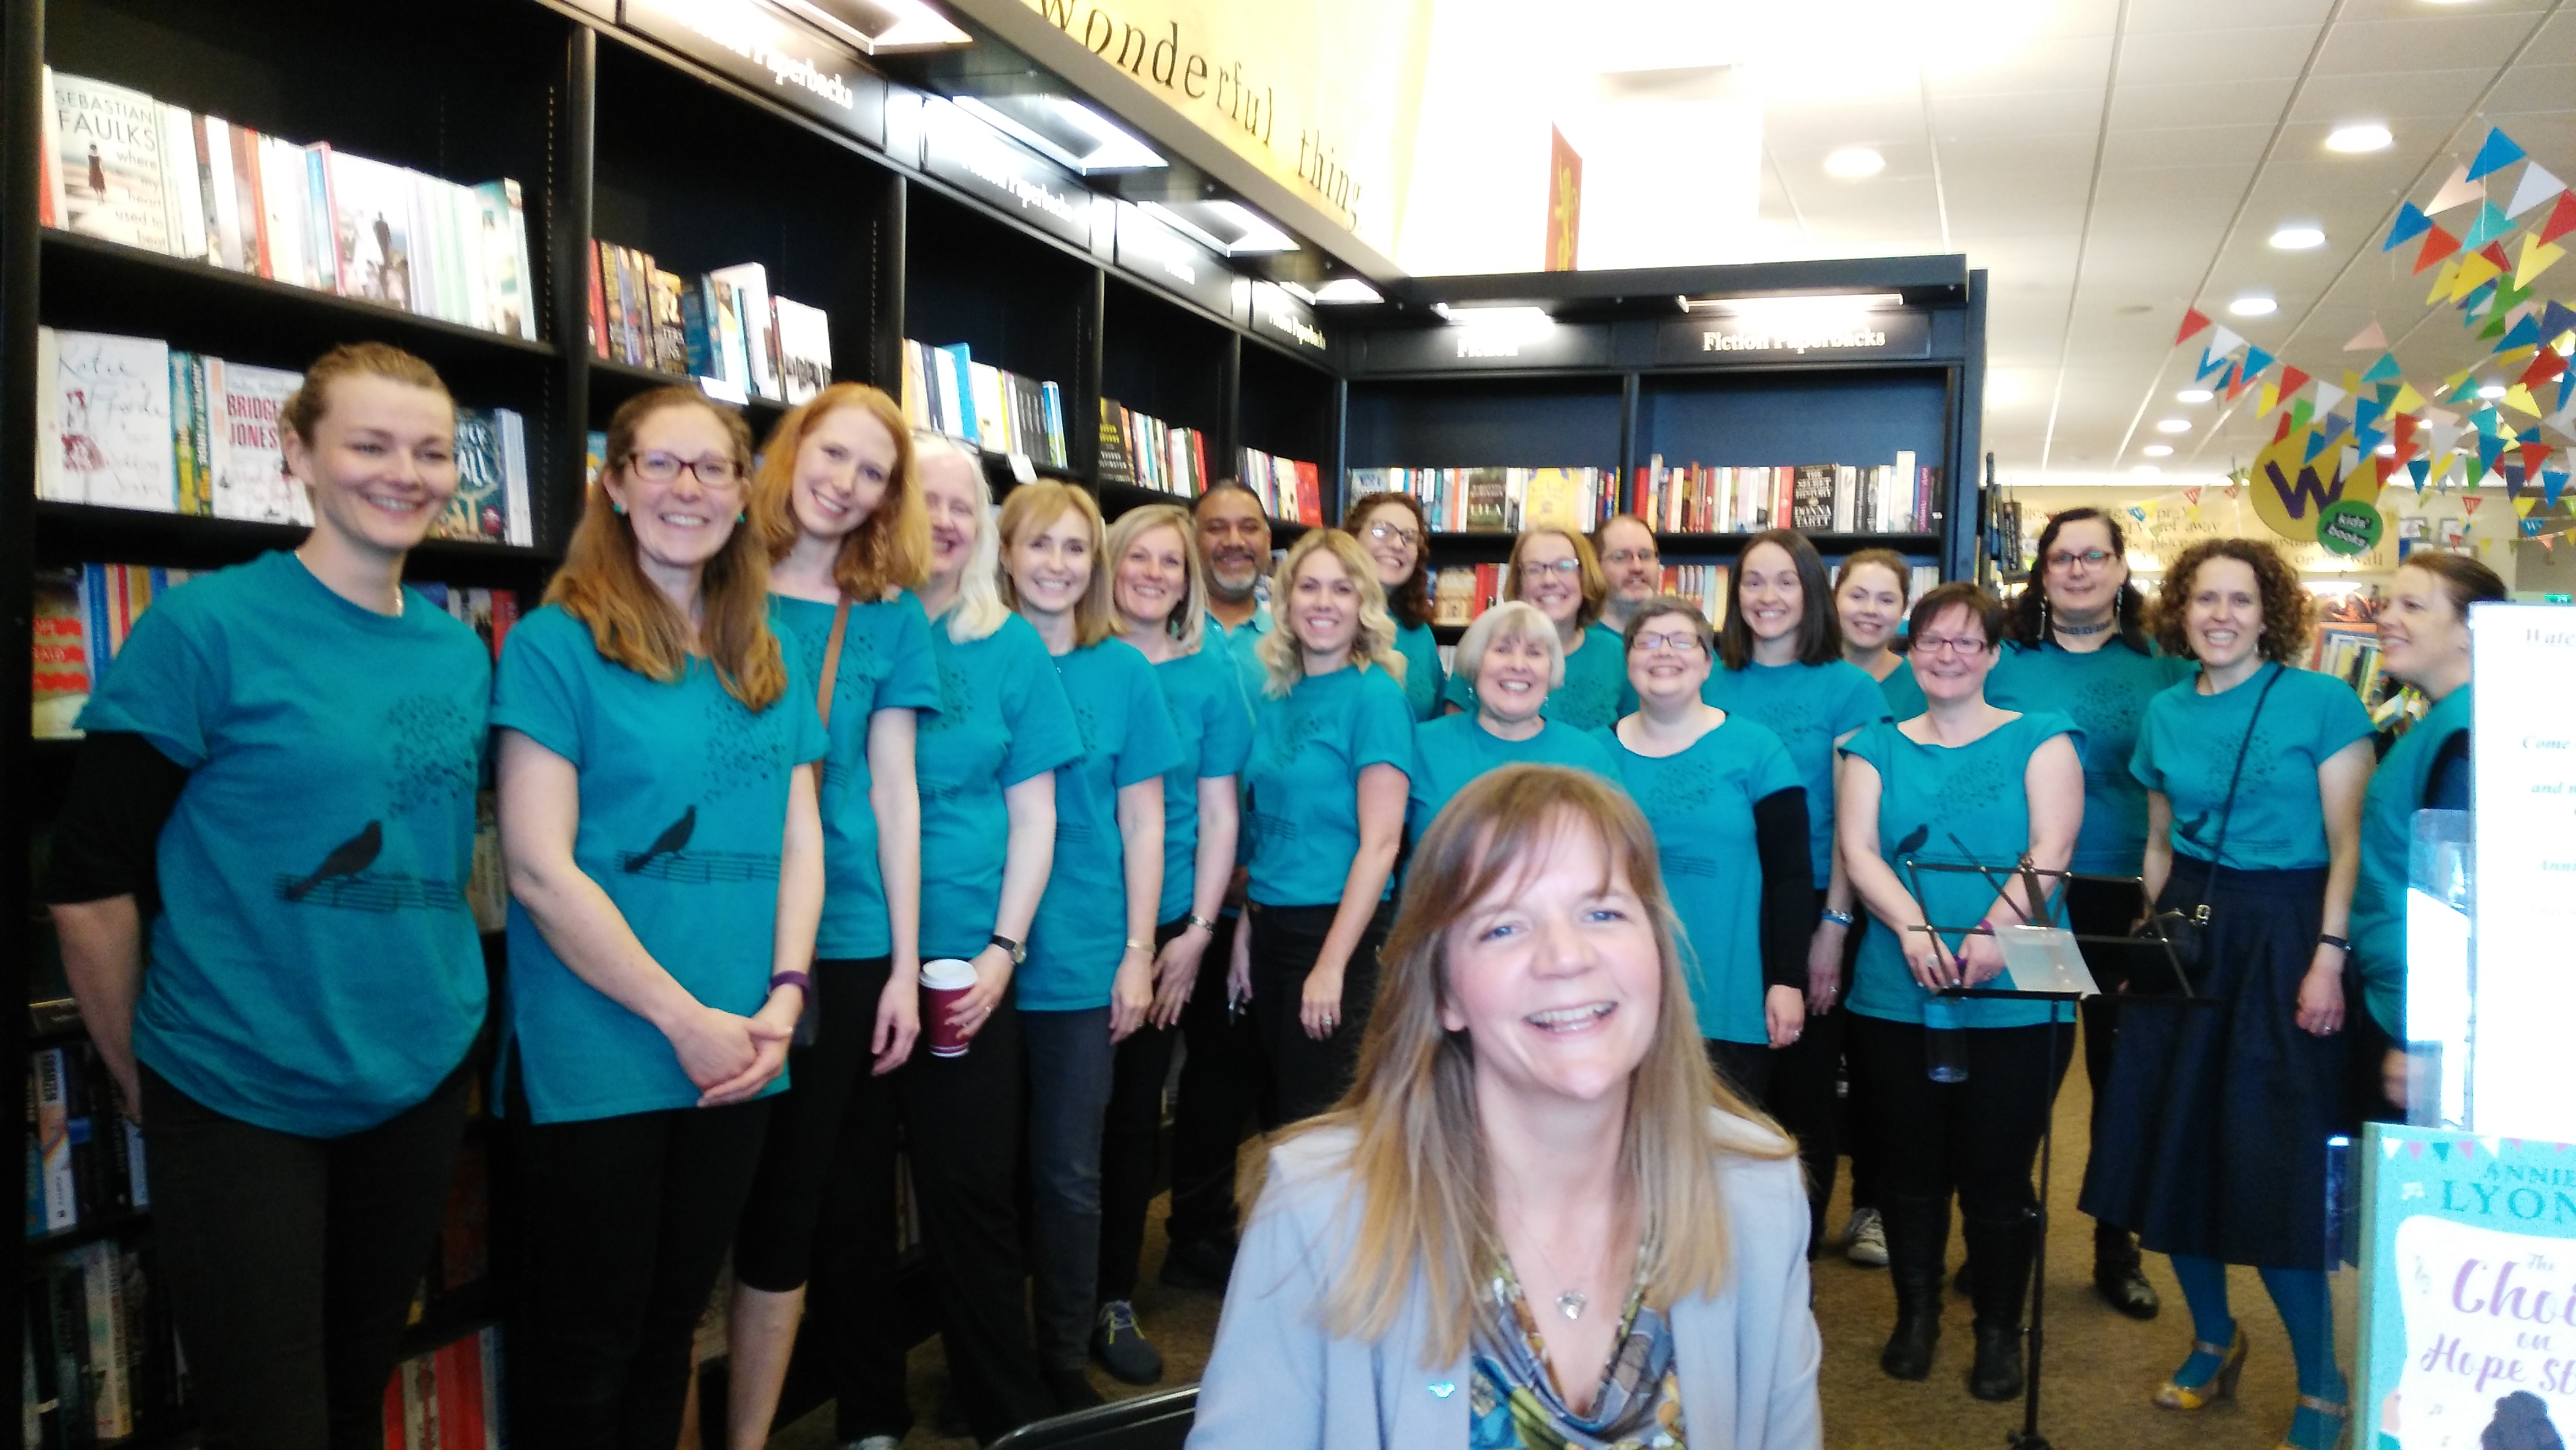 Anniewritesstuff annie lyons and i took my choir and i can honestly say it was the best day of my writing career so far as we walked in and spotted my books fandeluxe Ebook collections